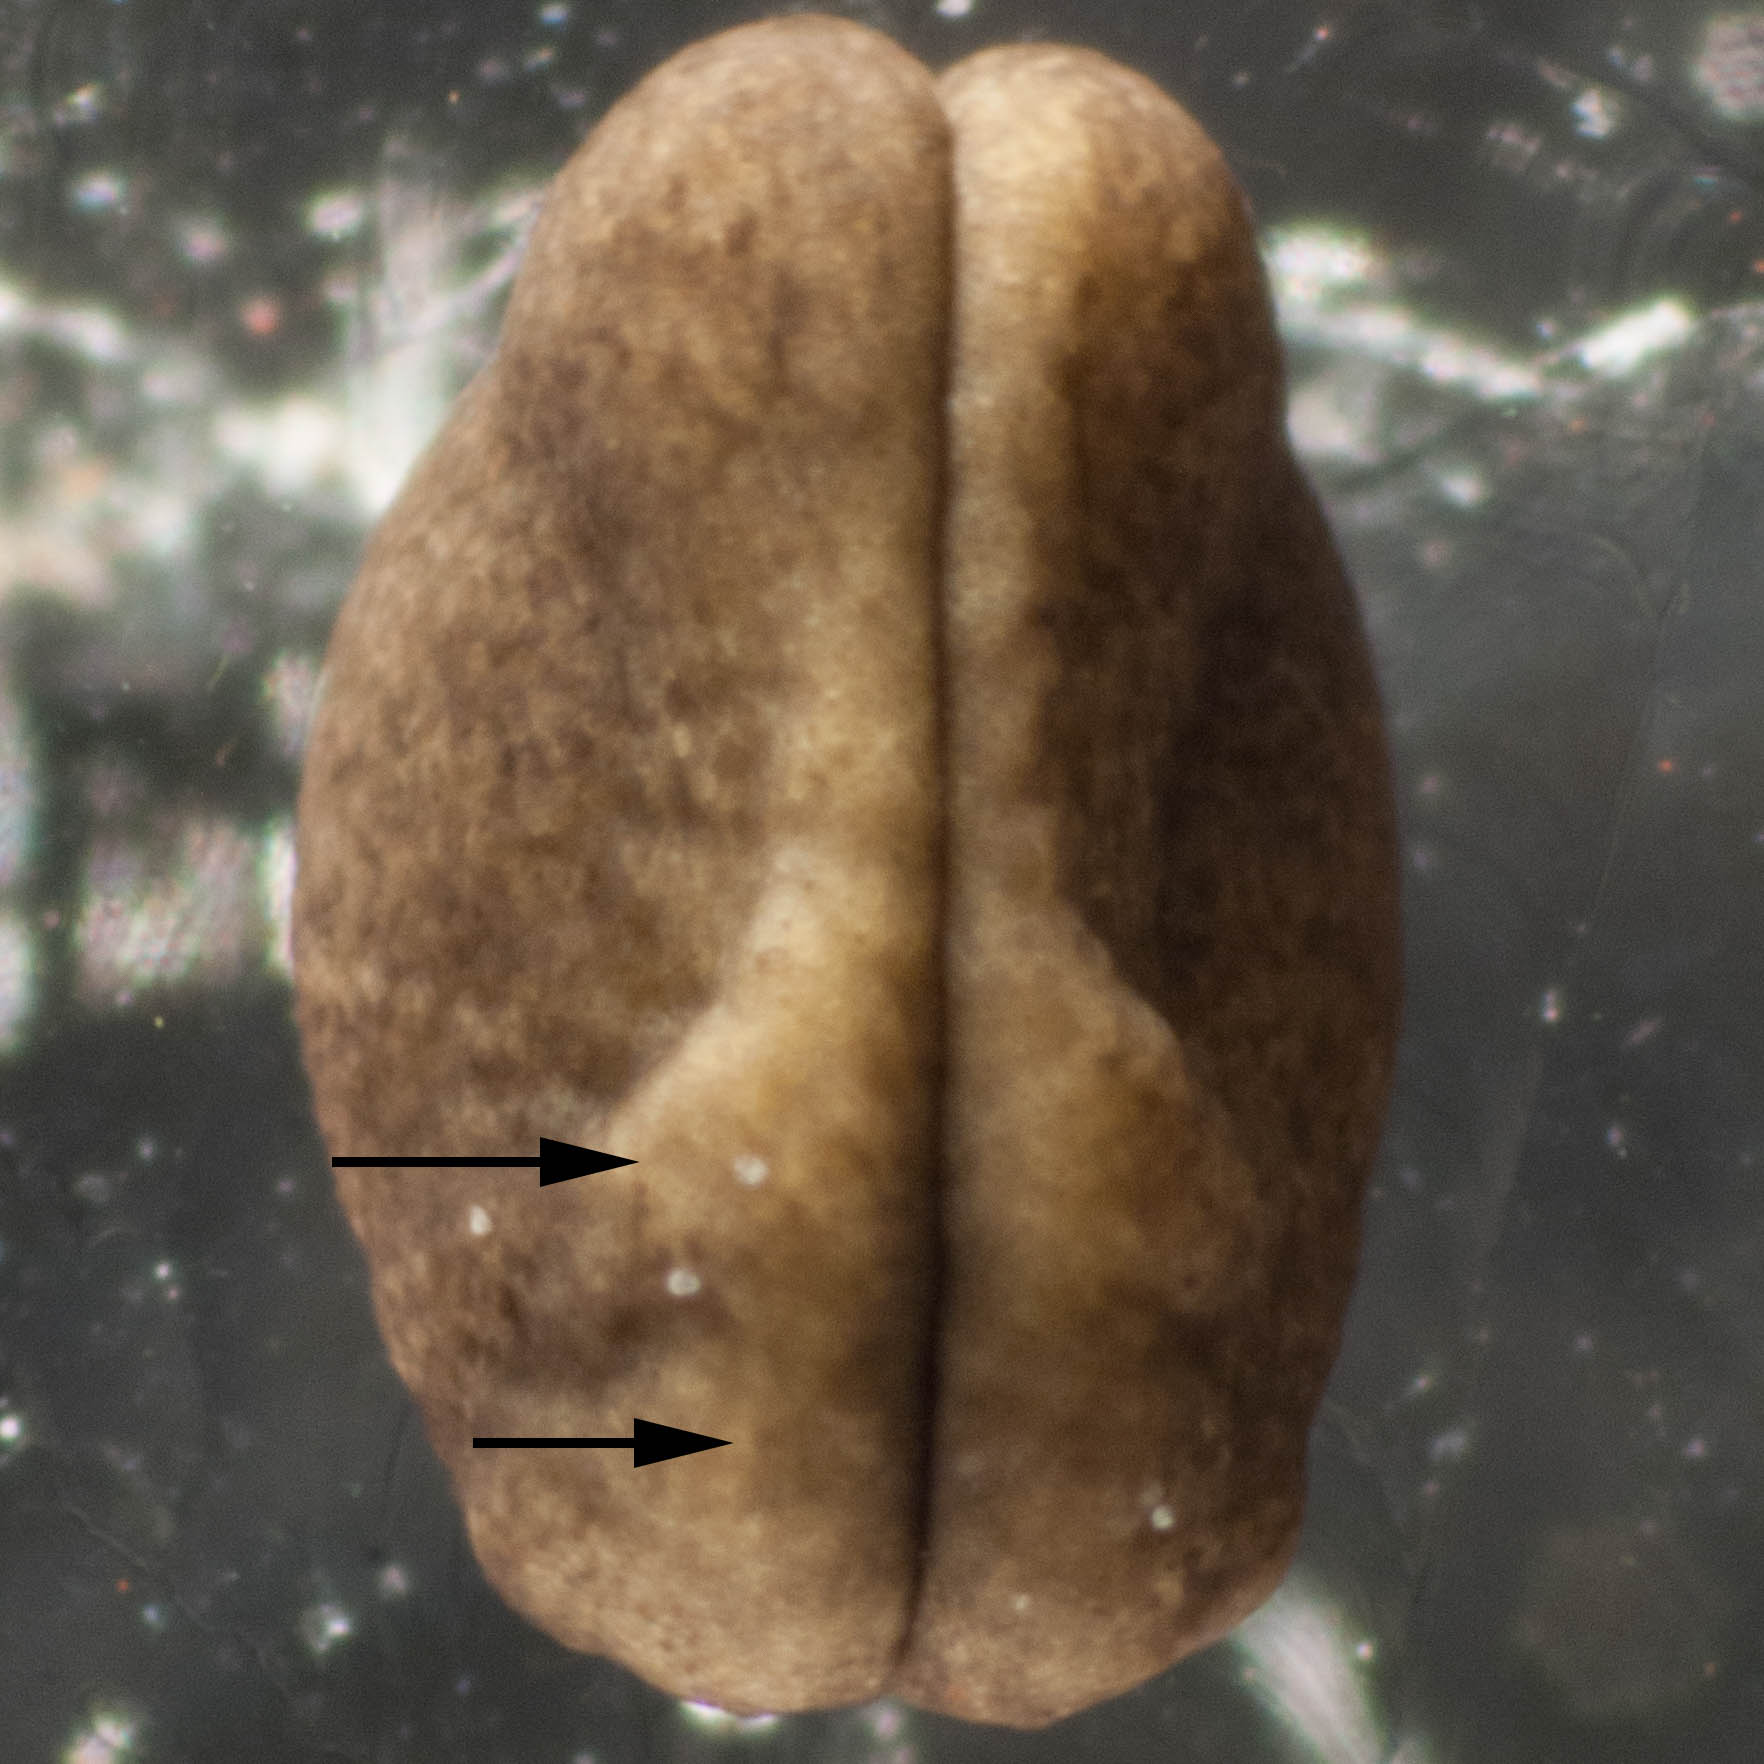 Image 18.  The folds have come together at the midline along the whole length of the embryo.Soon they will fuse to form a tube just under the skin. This tube is the forerunner of the brain and spinal cord. The bulge shown by the lower arrow becomes the brain. The other bulge, indicated by the upper arrow, becomes the external gills.